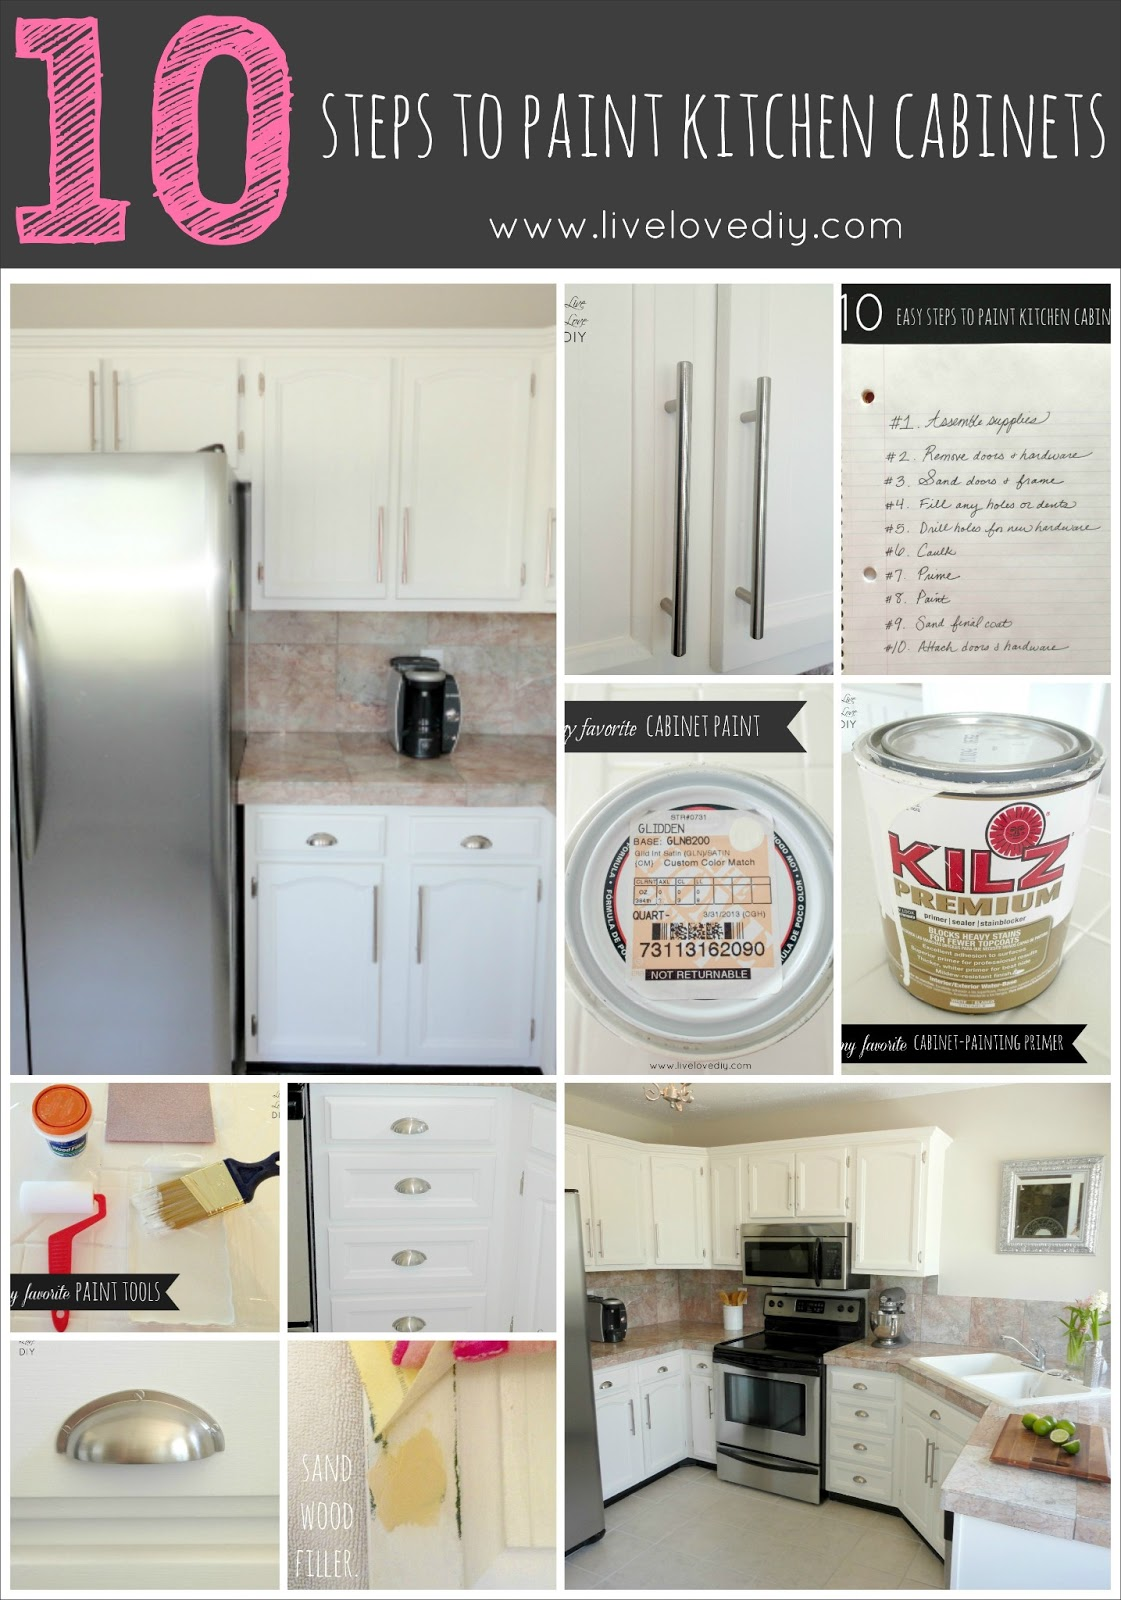 10 easy steps to paint kitchen cabinets painted kitchen cabinets How To Paint Kitchen Cabinets in 10 Easy Steps